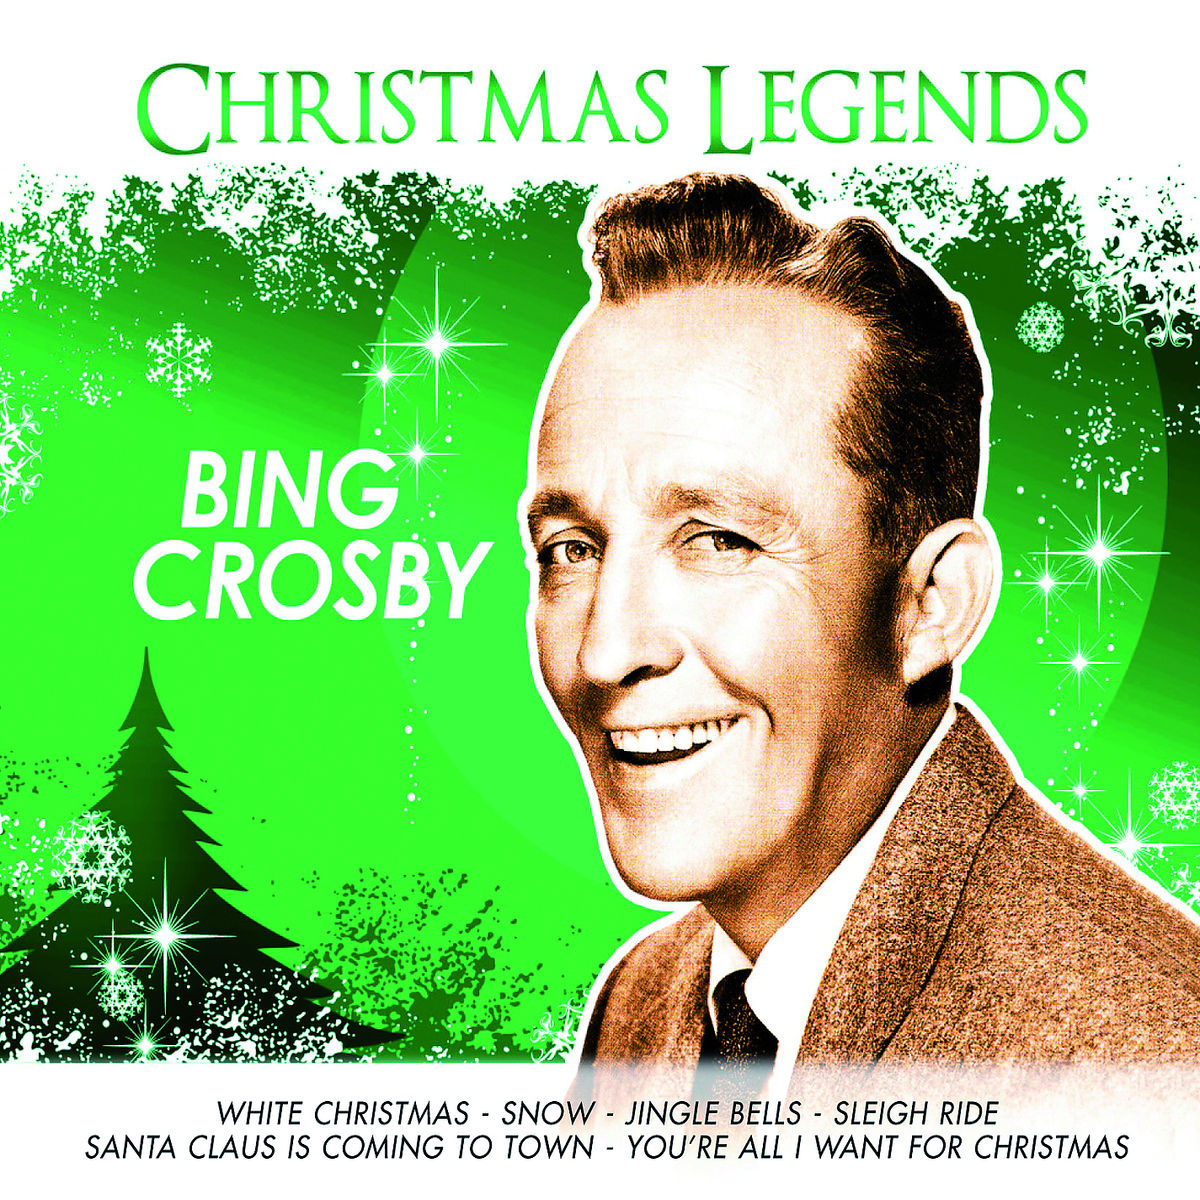 Bing Crosby Christmas.Details About Bing Crosby Christmas Legends